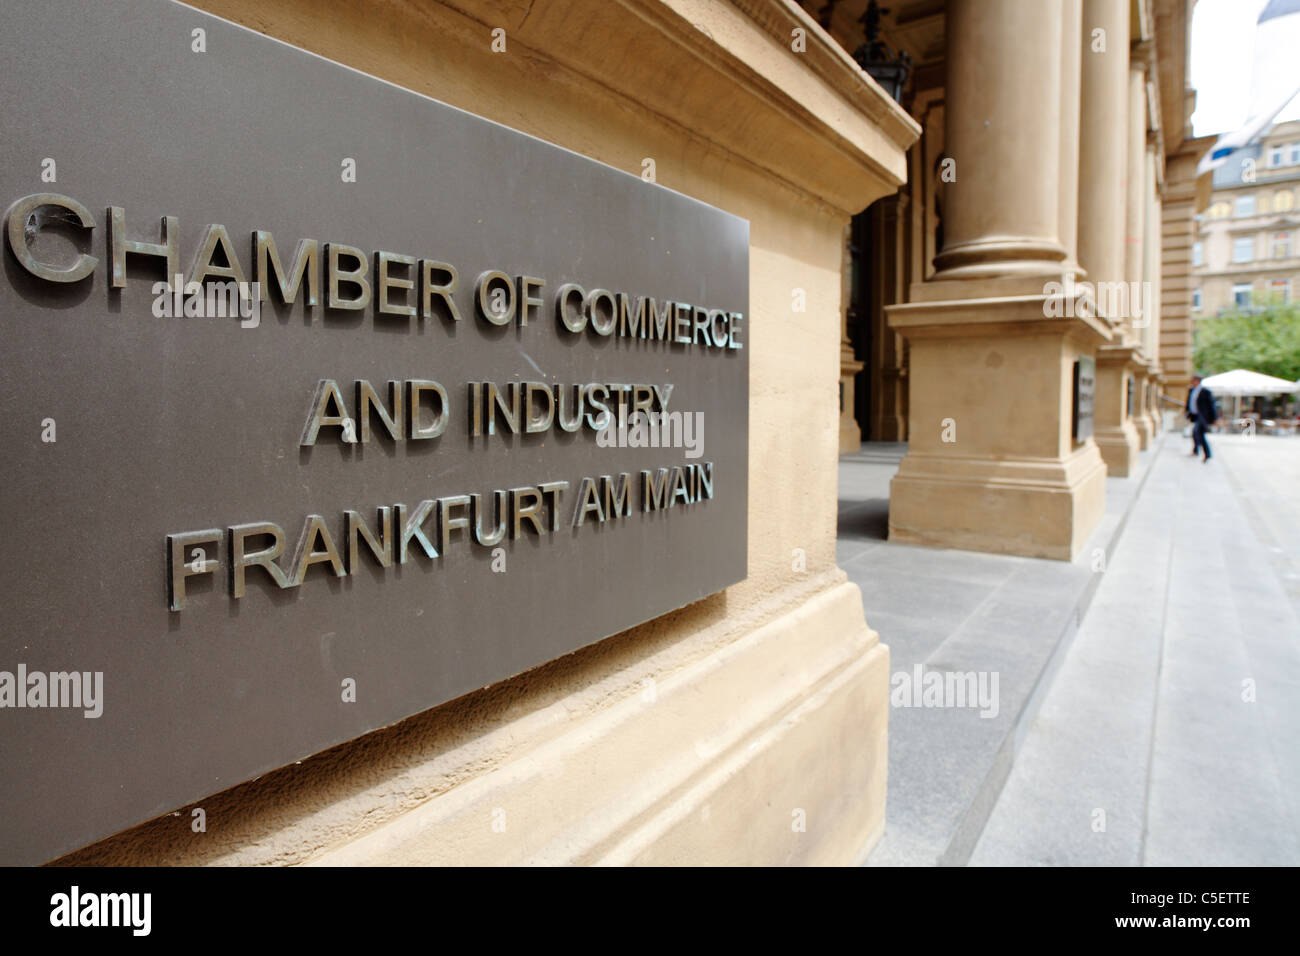 Chamber of Commerce and Industry Frankfurt am Main, Germany - Stock Image